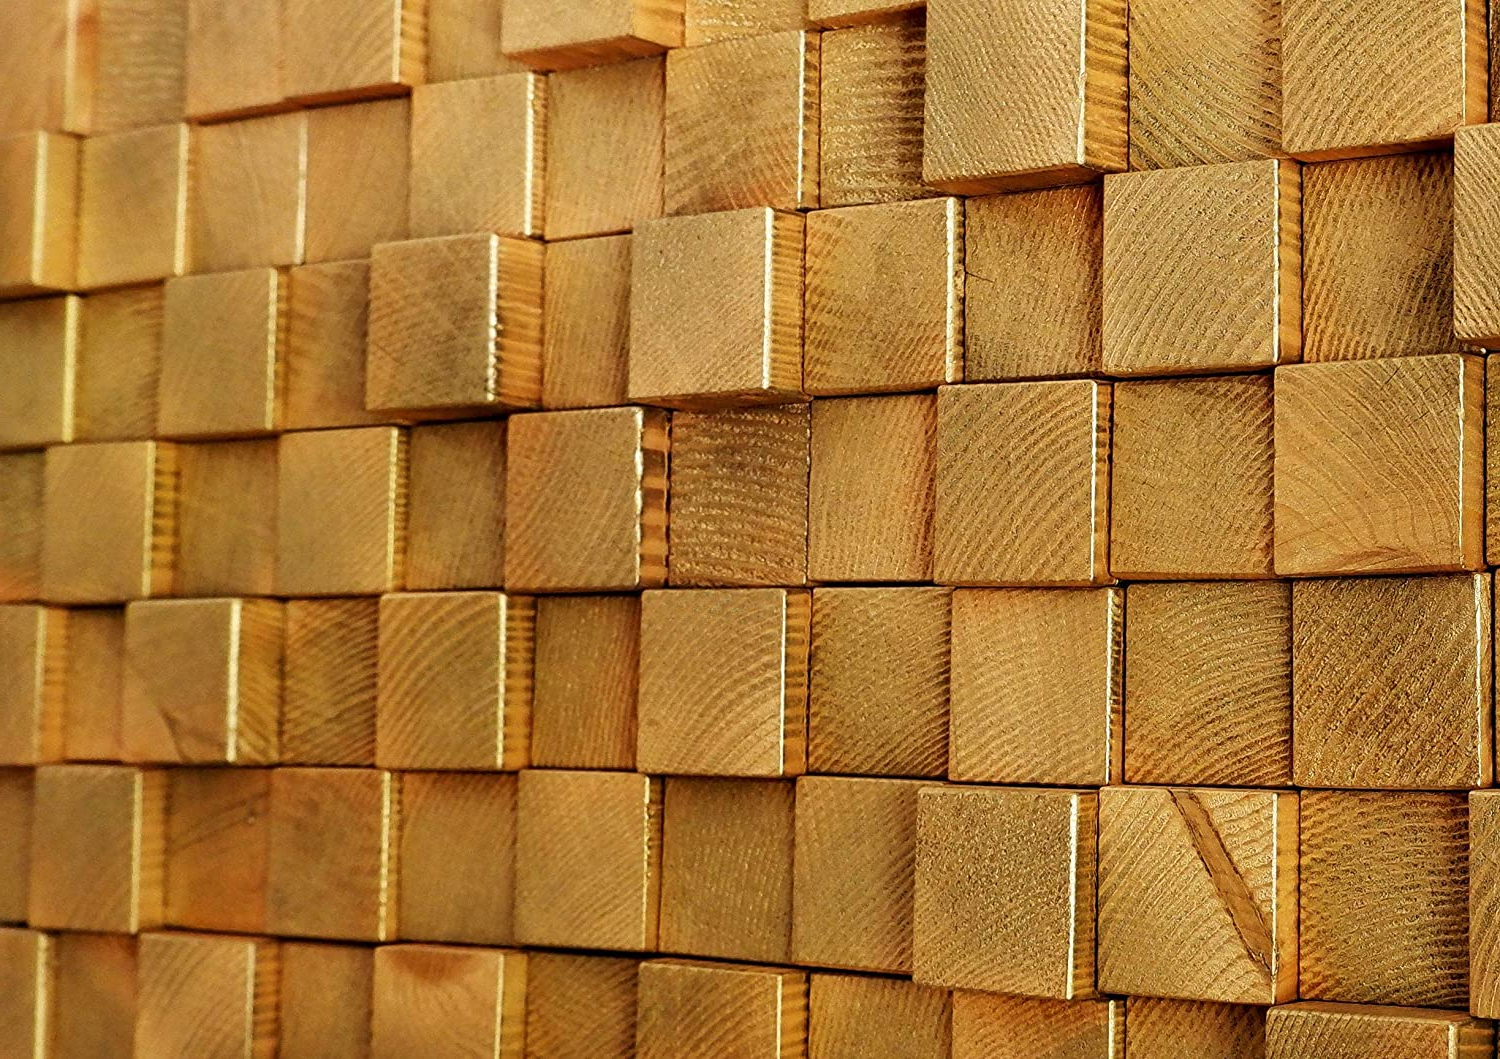 Amazon: Golden Wall Art, Wood Wall Art, Pine Wood Wall Within Best And Newest Square Wood Wall Décor (View 4 of 20)